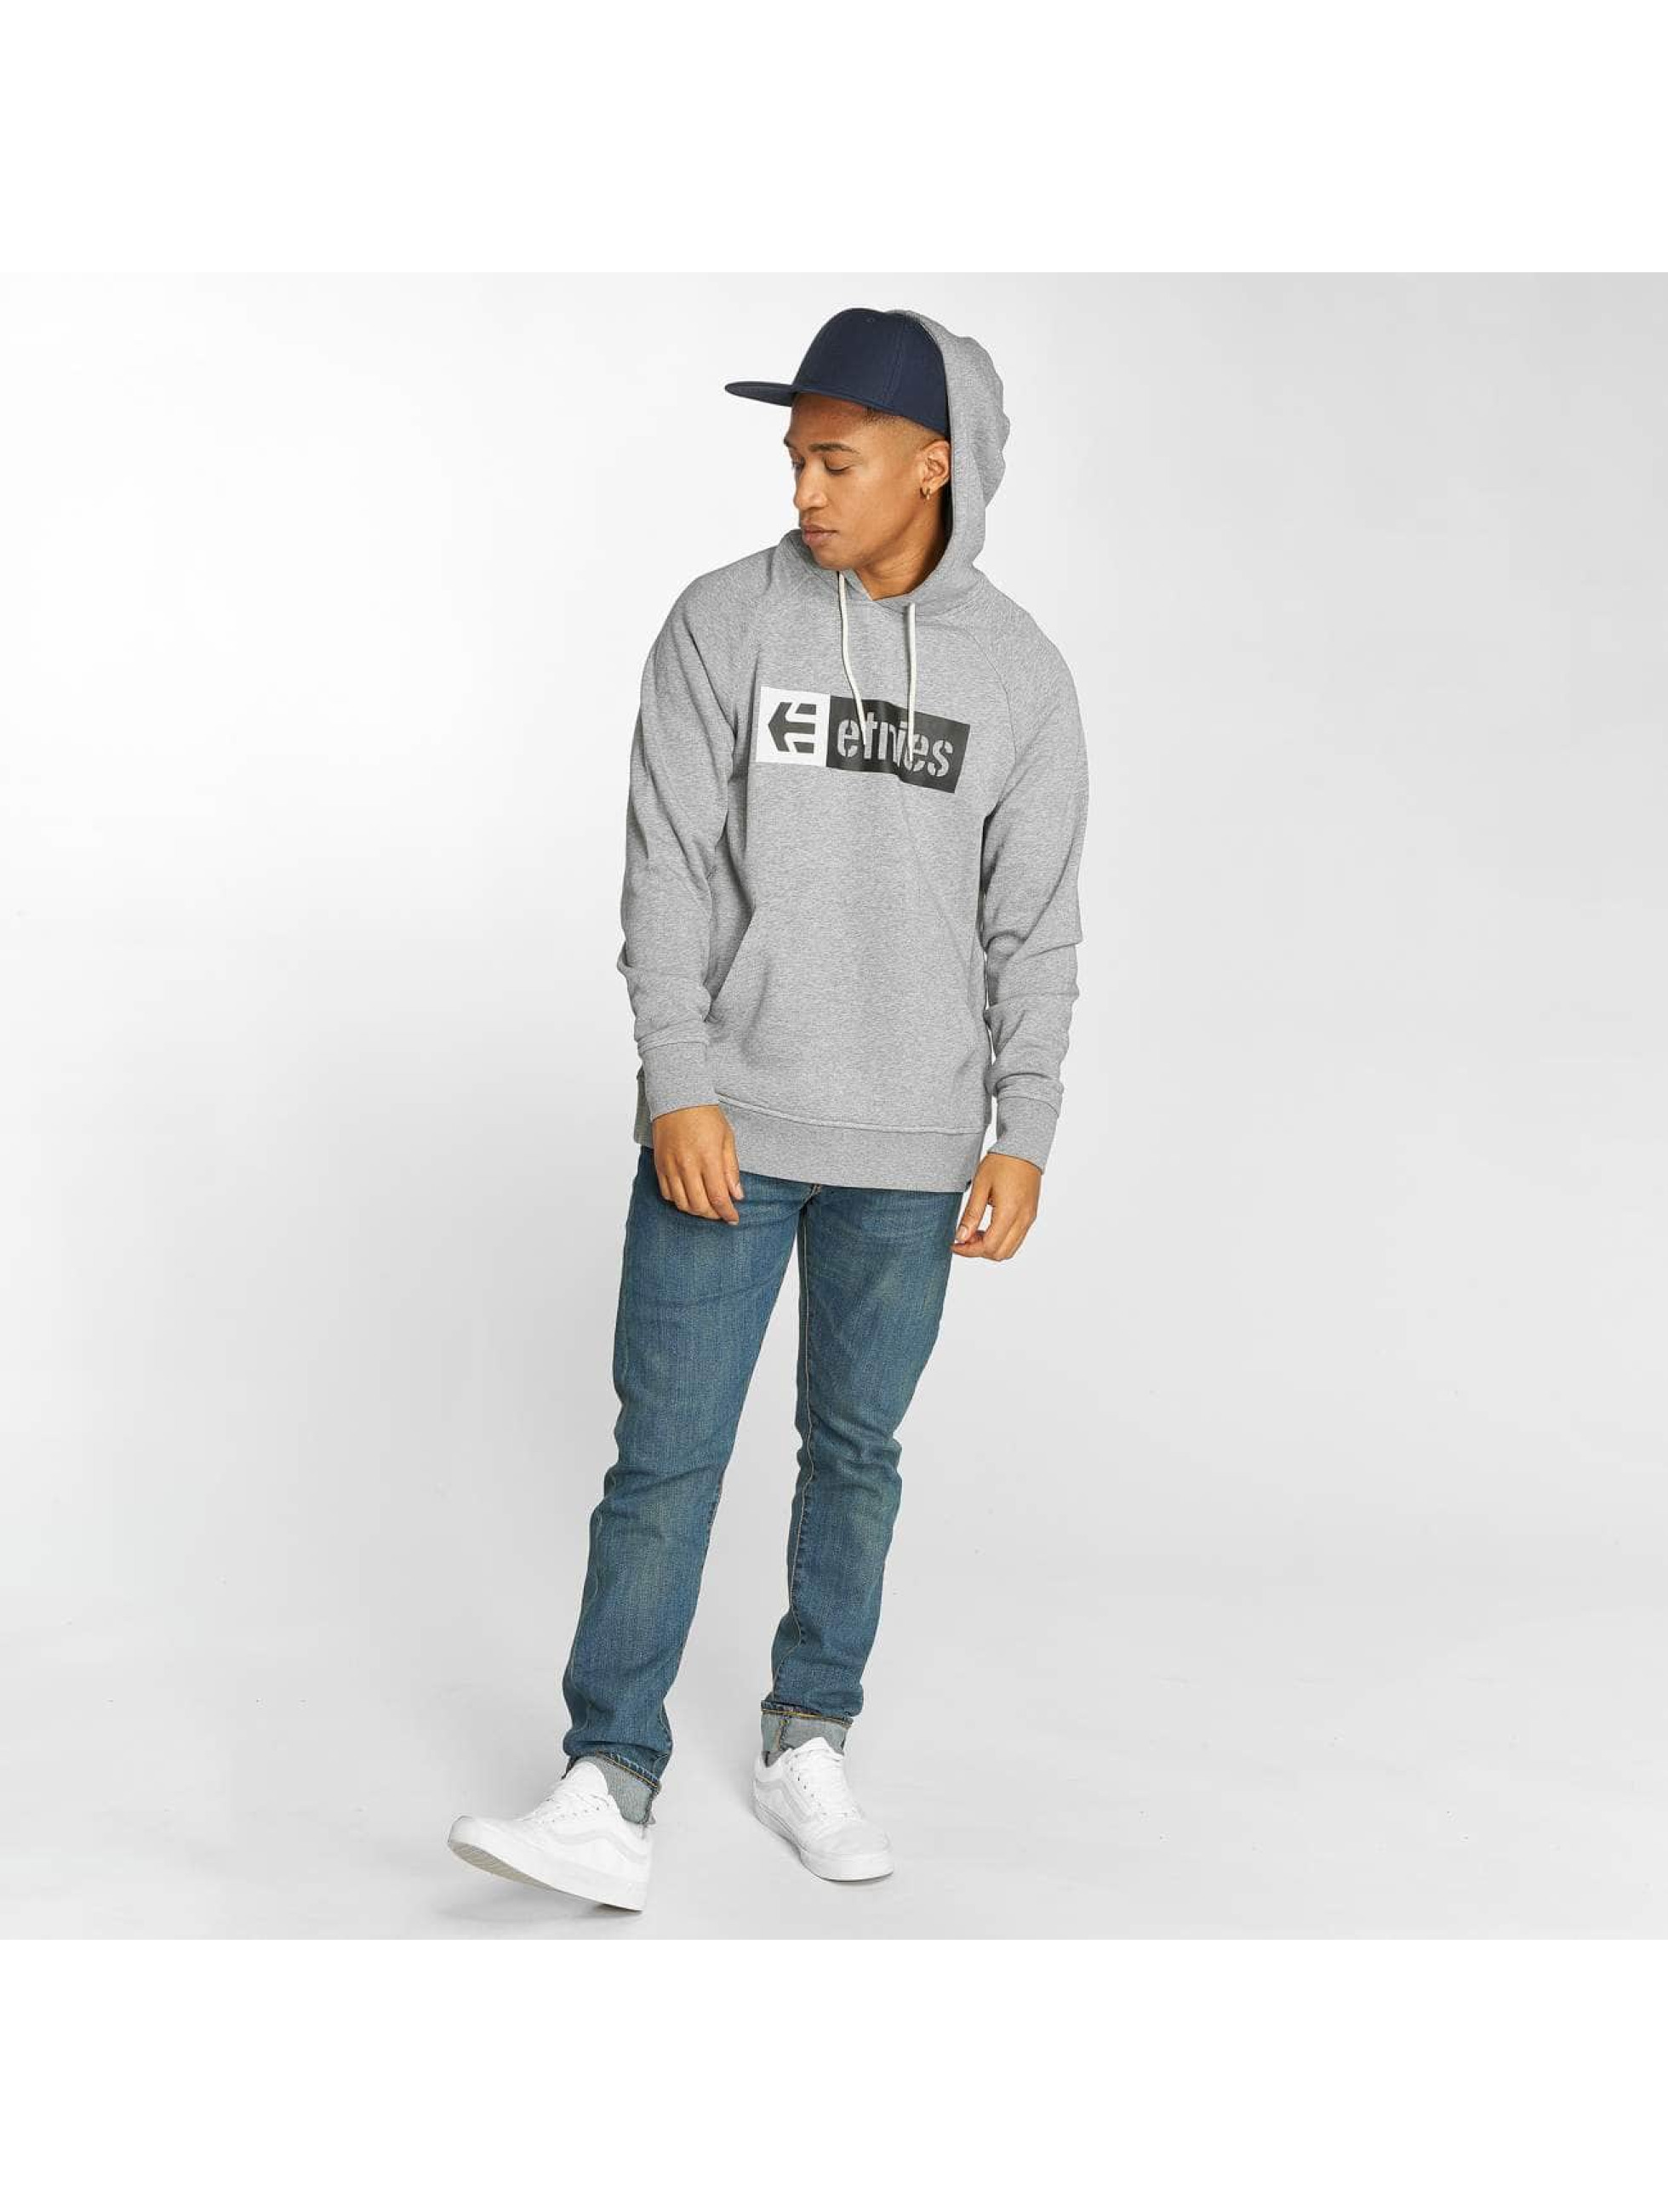 Etnies Hoody New Box grau